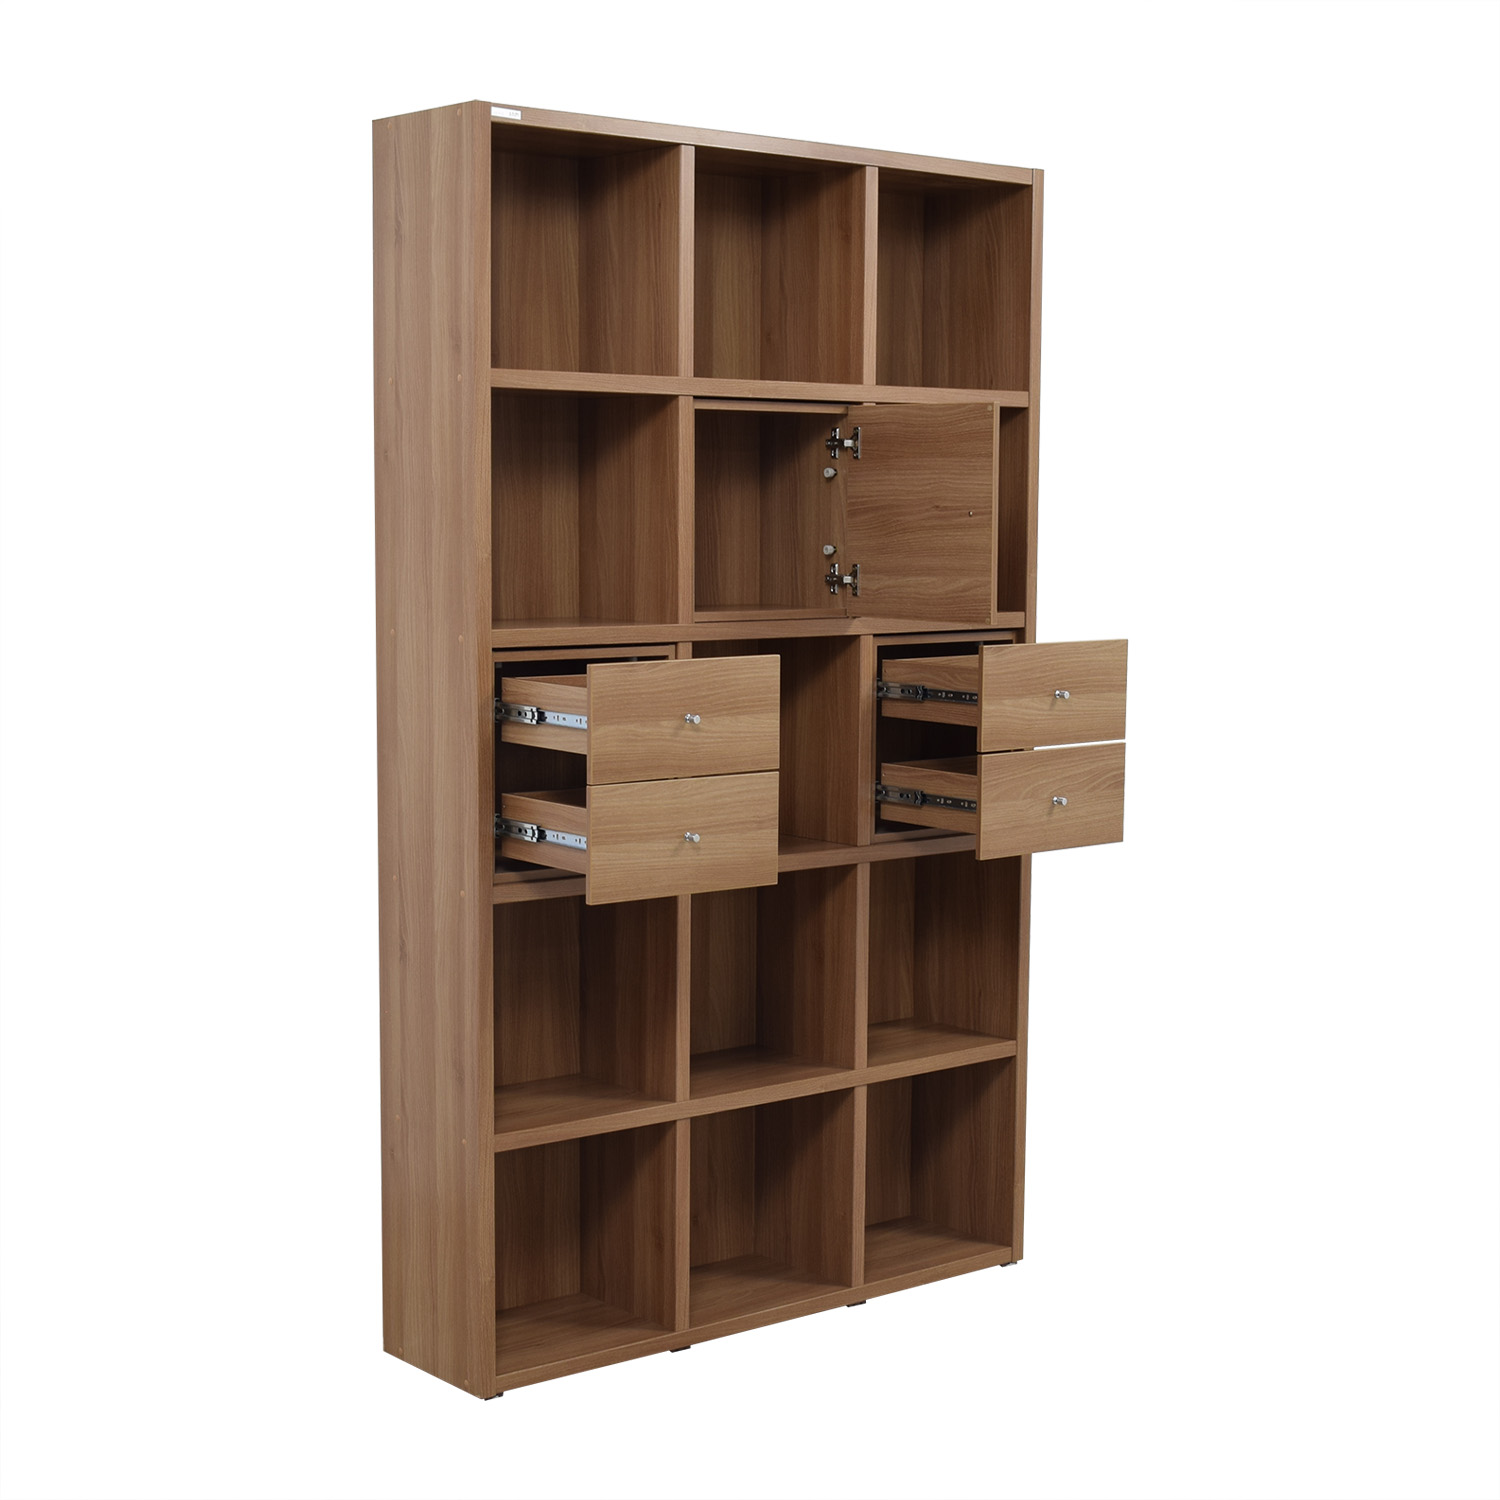 ... Hansaem Hansaem Natural Wood Bookshelf with Drawers and Storage used ...